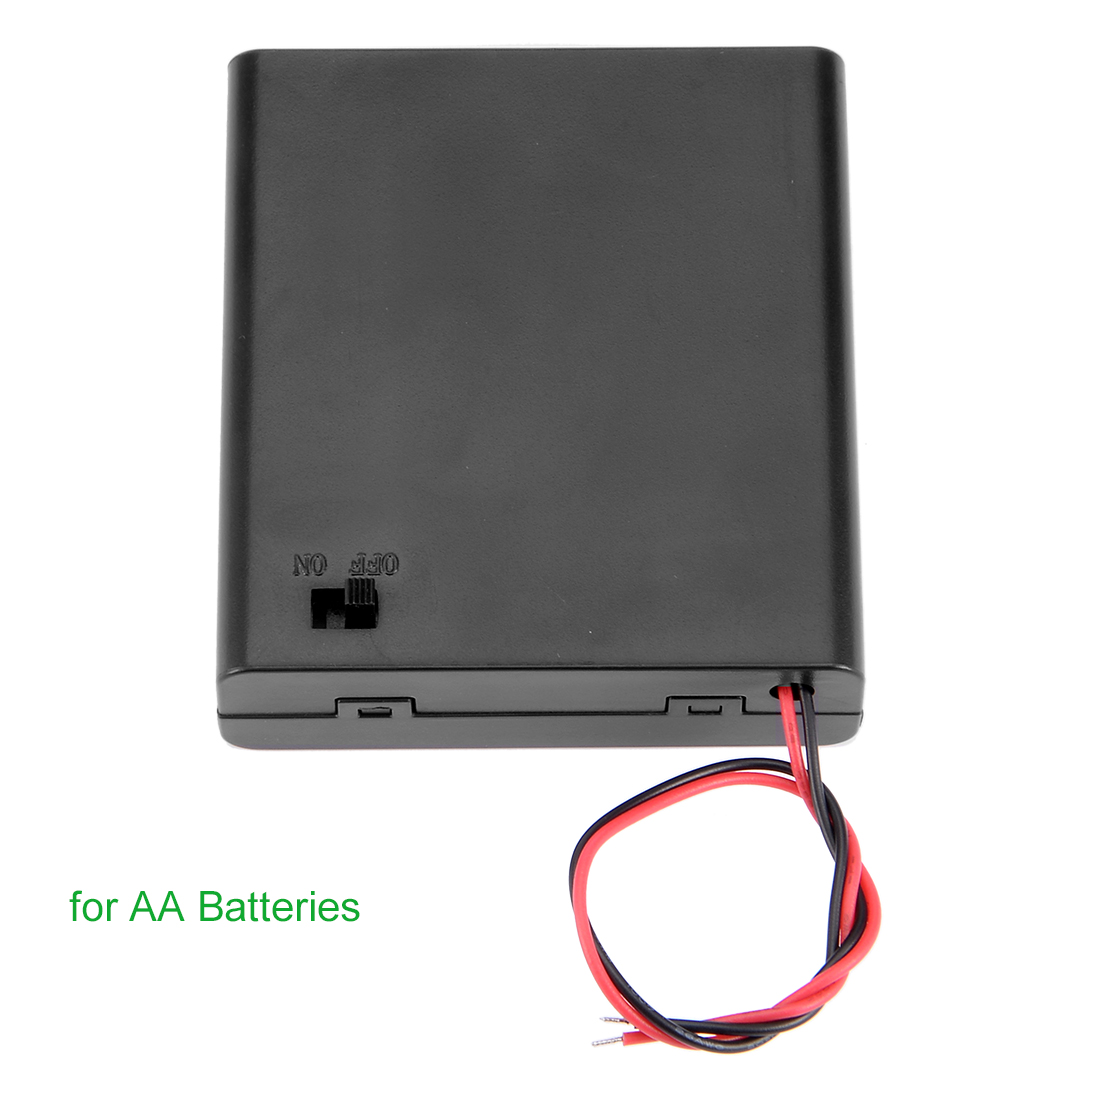 Unique Bargains 10 Pcs 6V Battery Case Storage Box 4 x 1.5V AA Batteries ON/OFF Switch w Cover - image 4 of 5